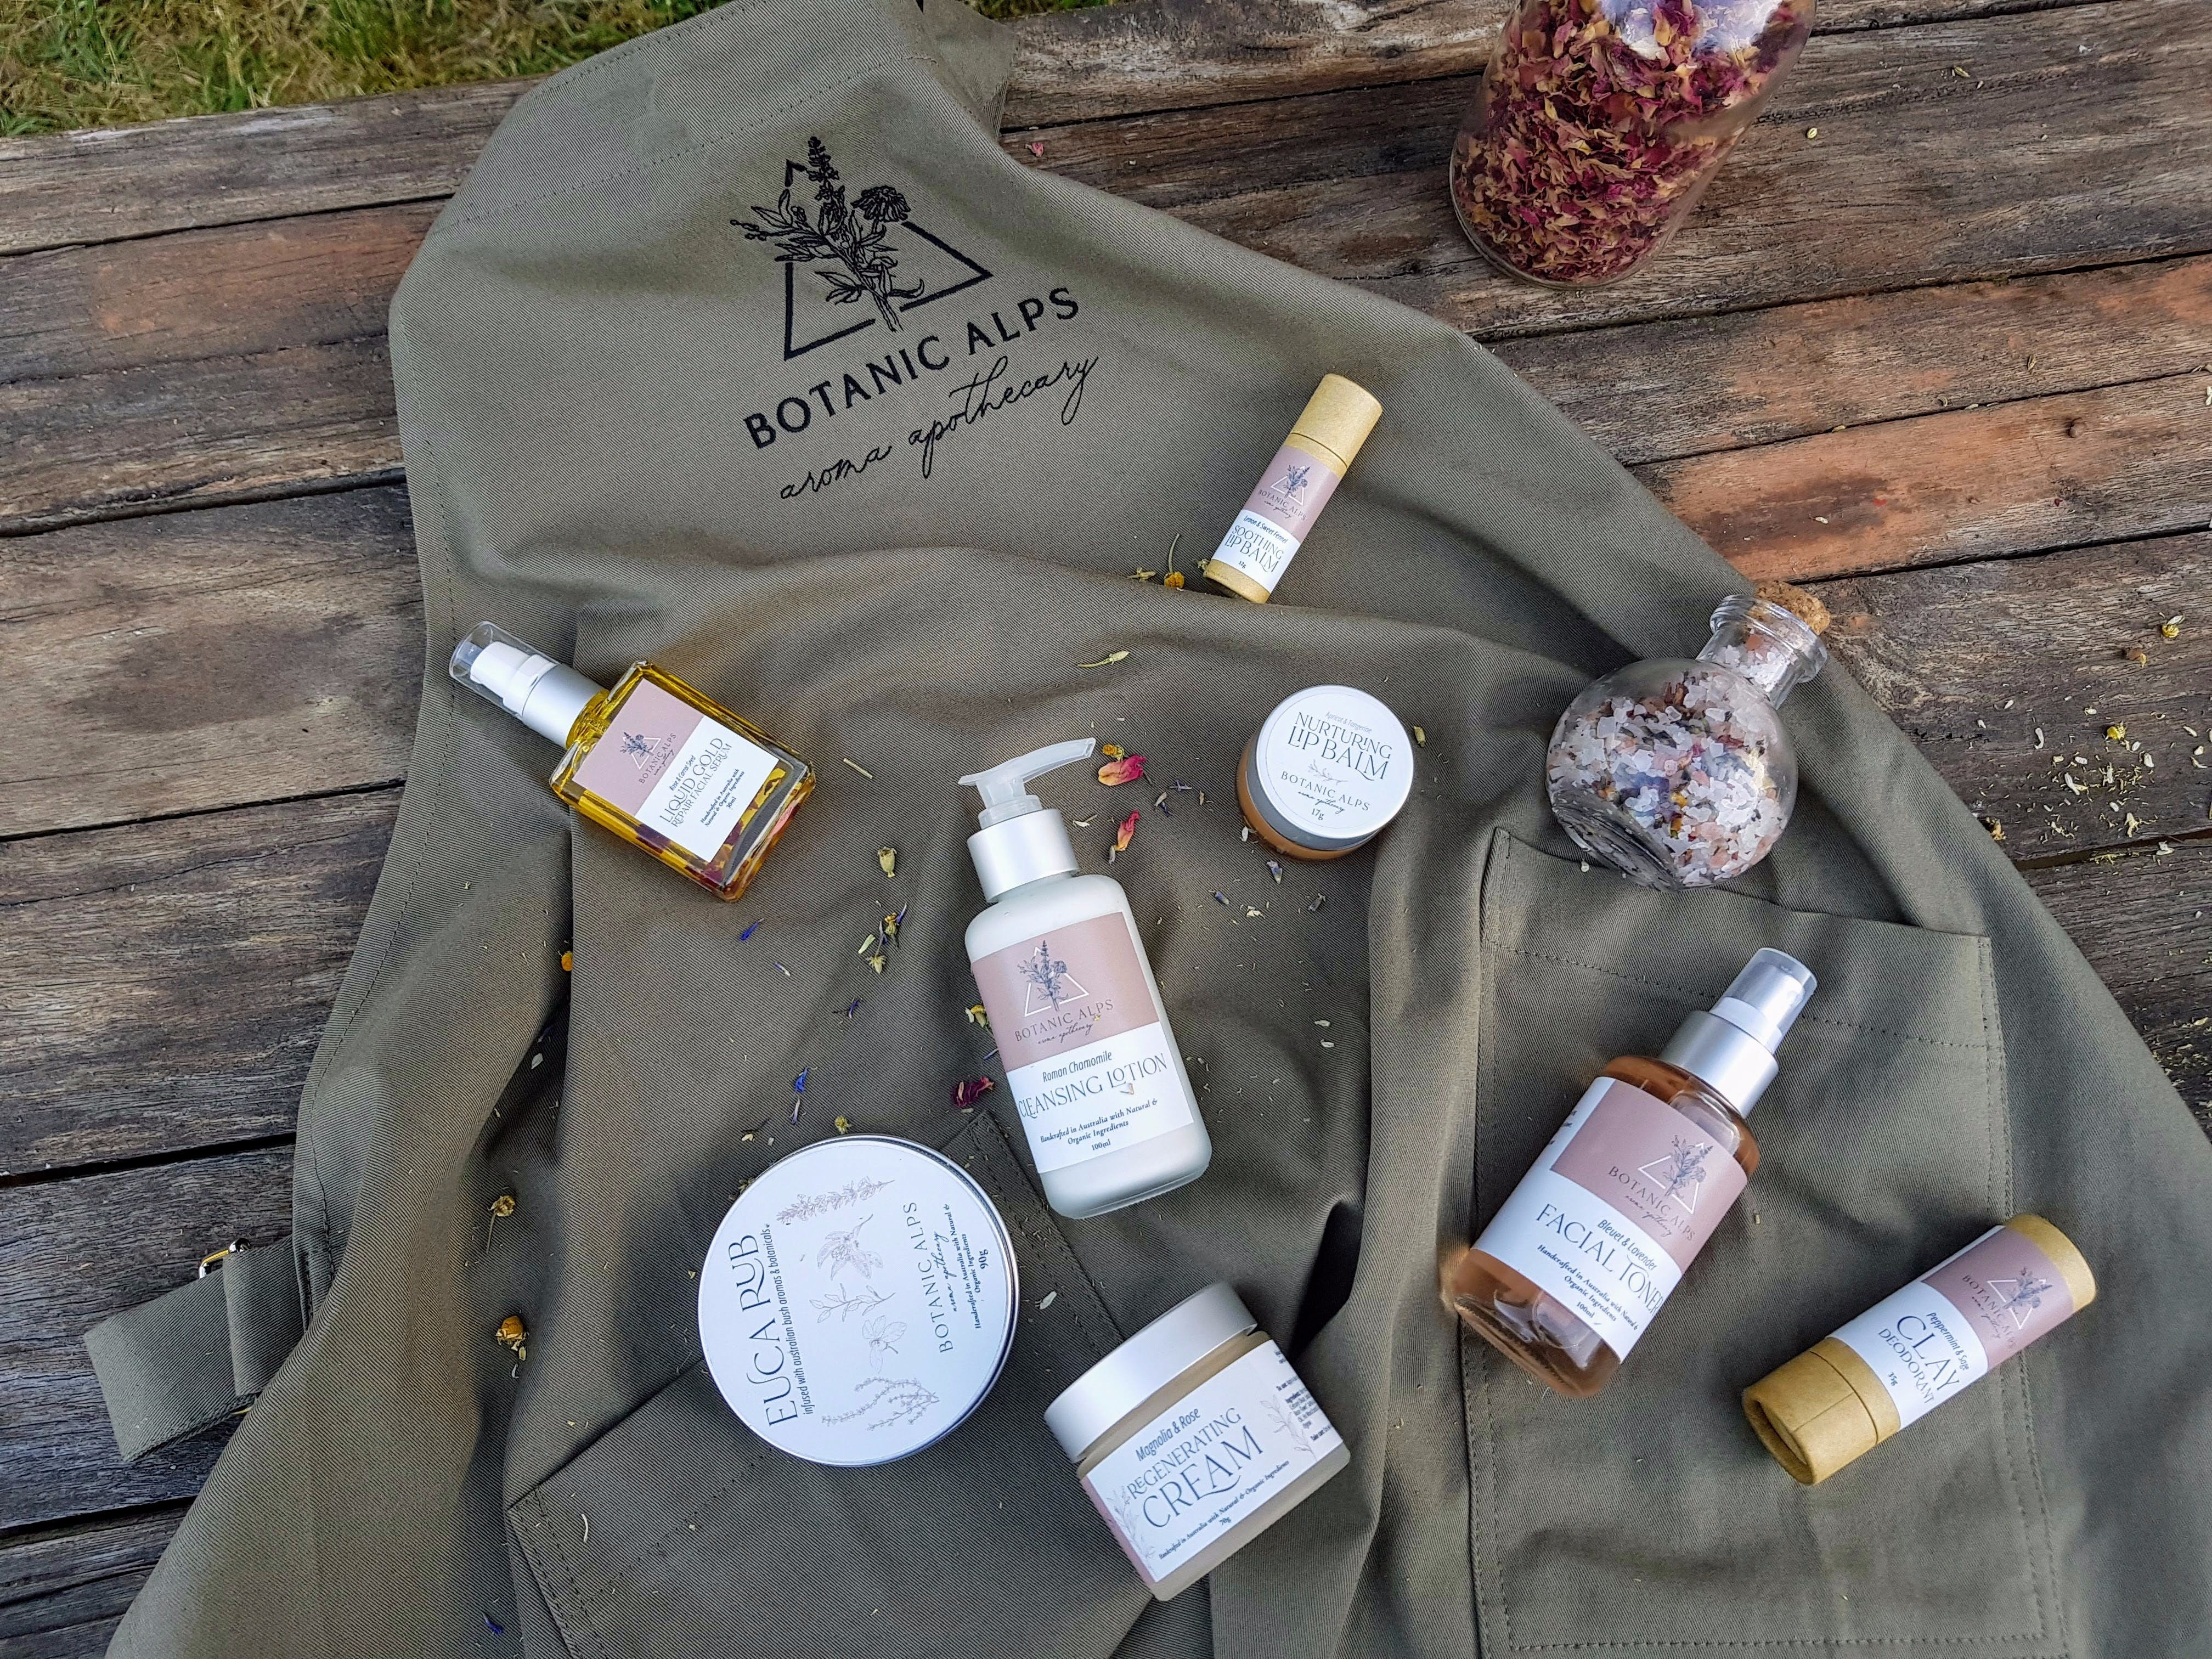 Botanic Alps Aroma Apothecary - Accommodation Adelaide